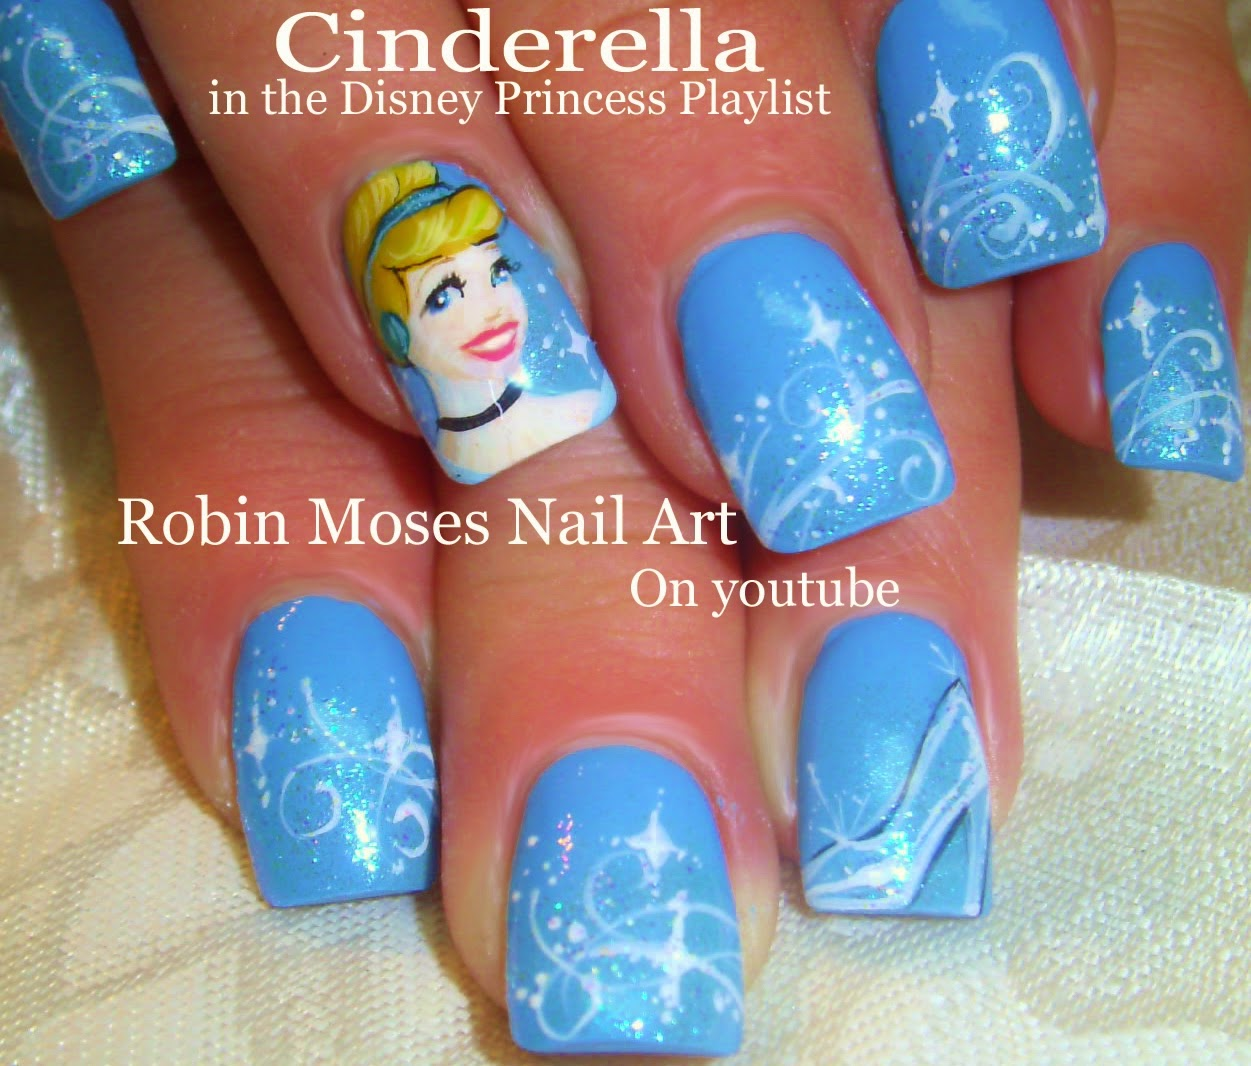 Cinderella Nail Art Design Tutorial up for Friday! - Nail Art By Robin Moses: Cinderella Nail Art Design Tutorial Up For